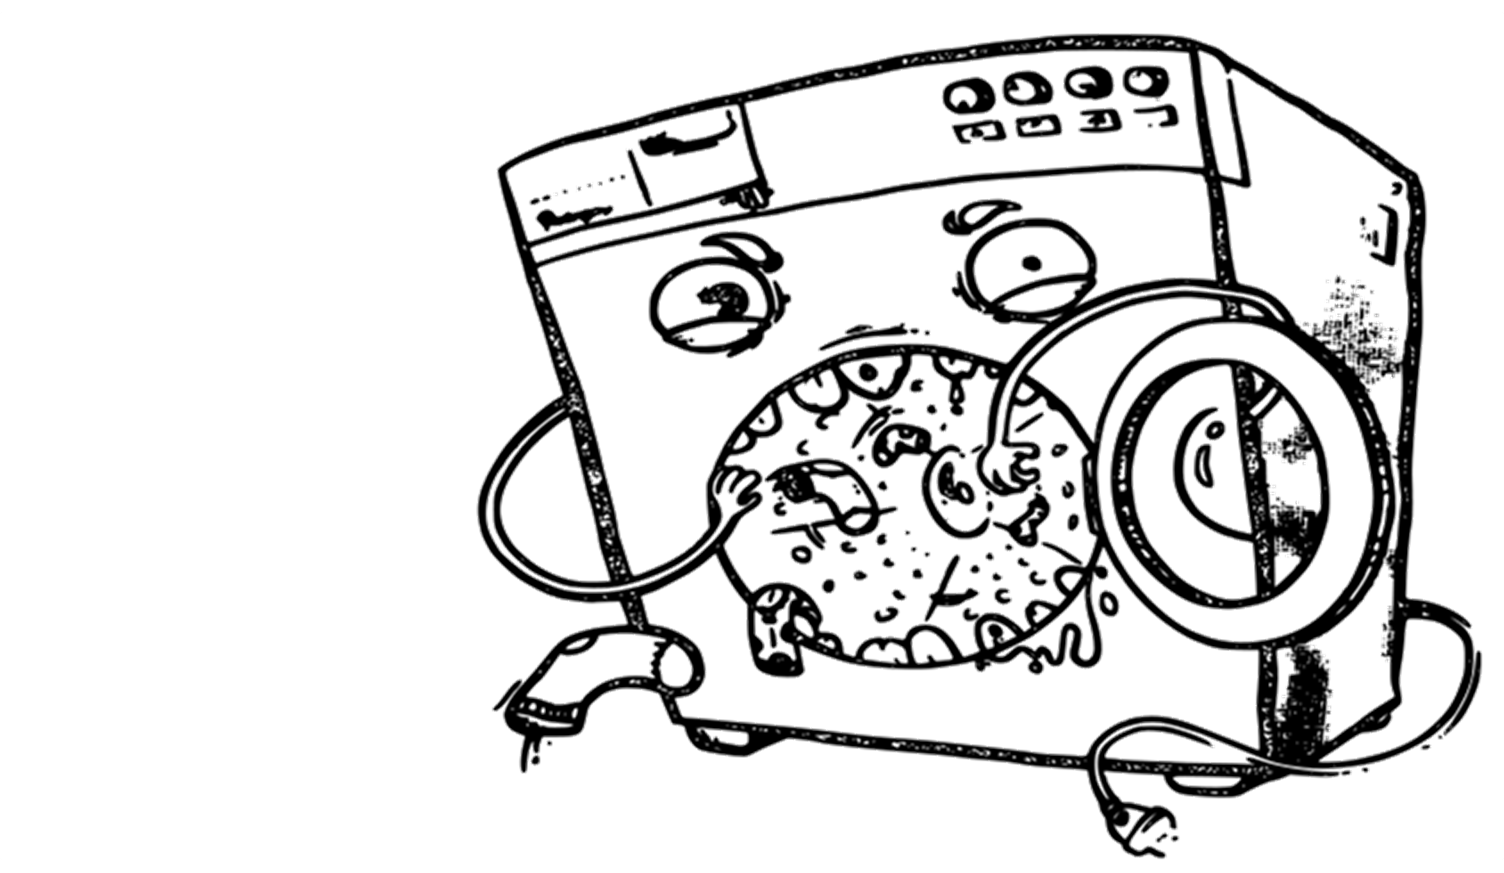 washing machine eating socks  (Illustration by Adam Belis, adambelis.com)